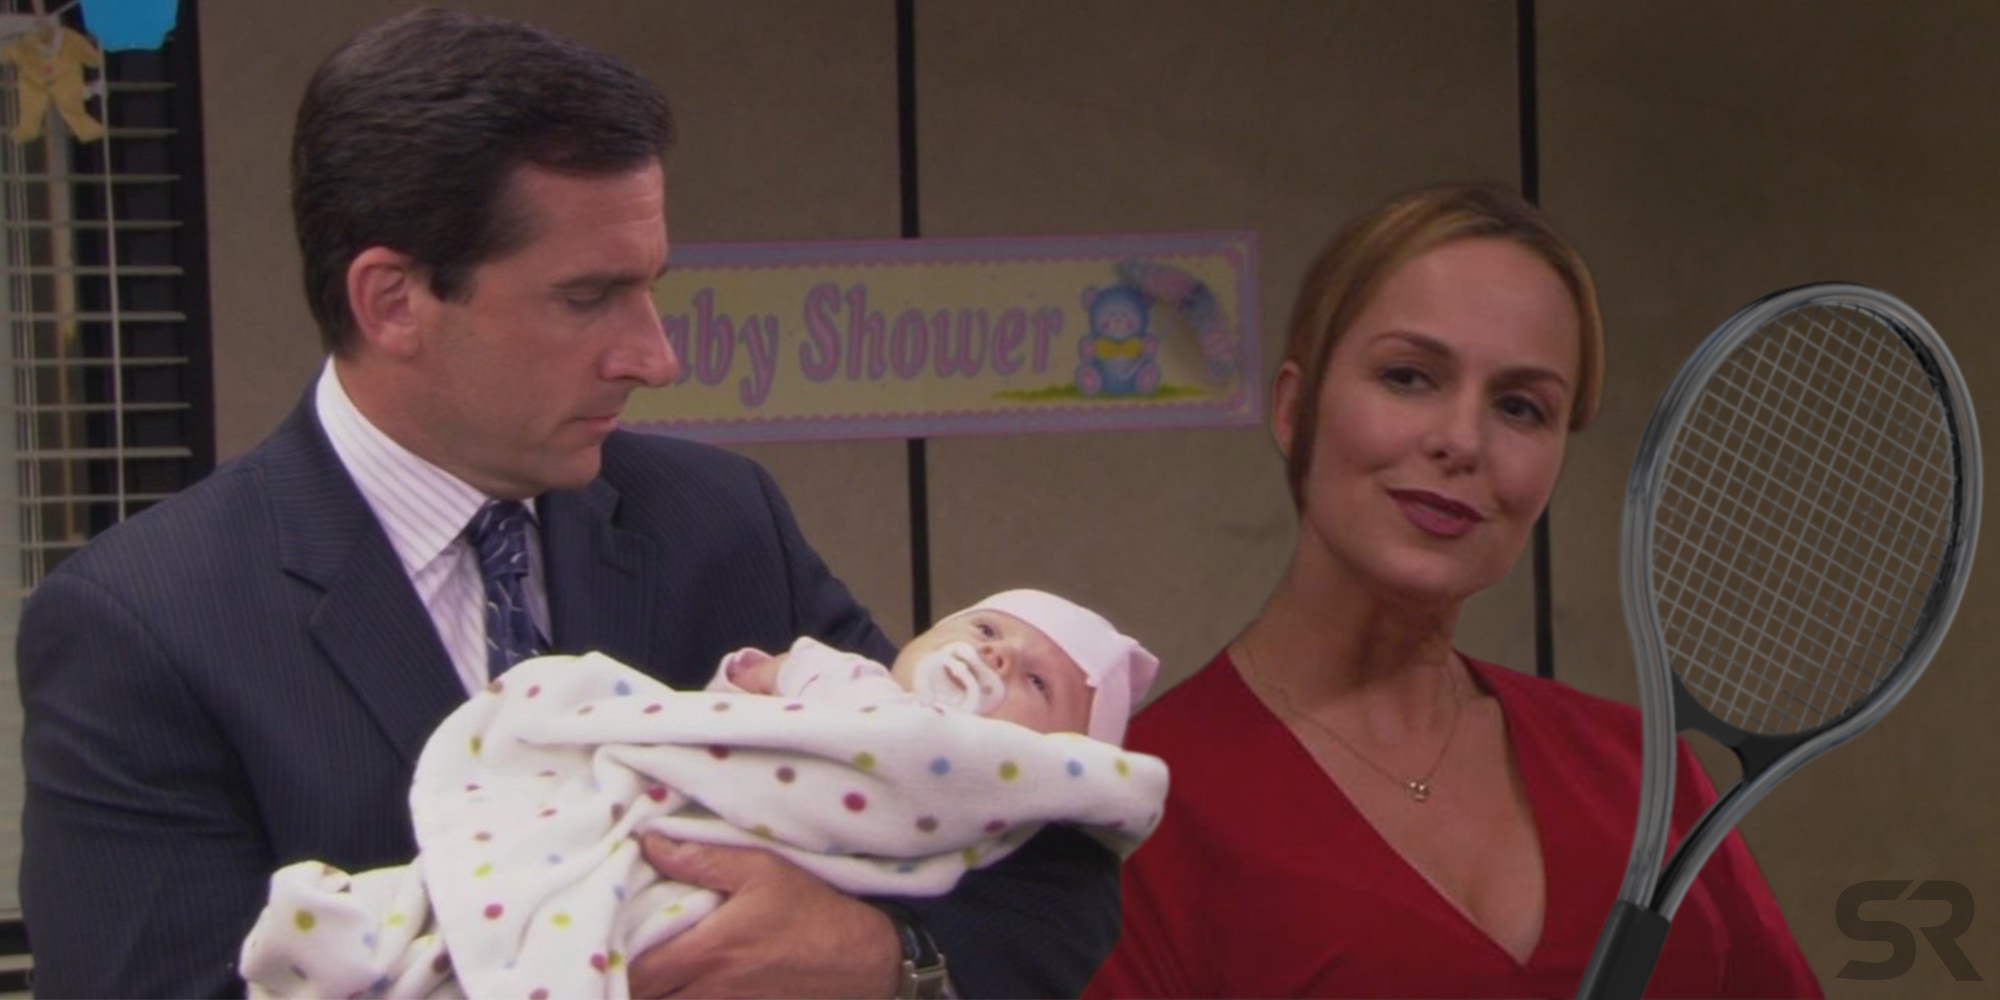 The father of Jan's baby on The Office is tennis star Andy Roddick